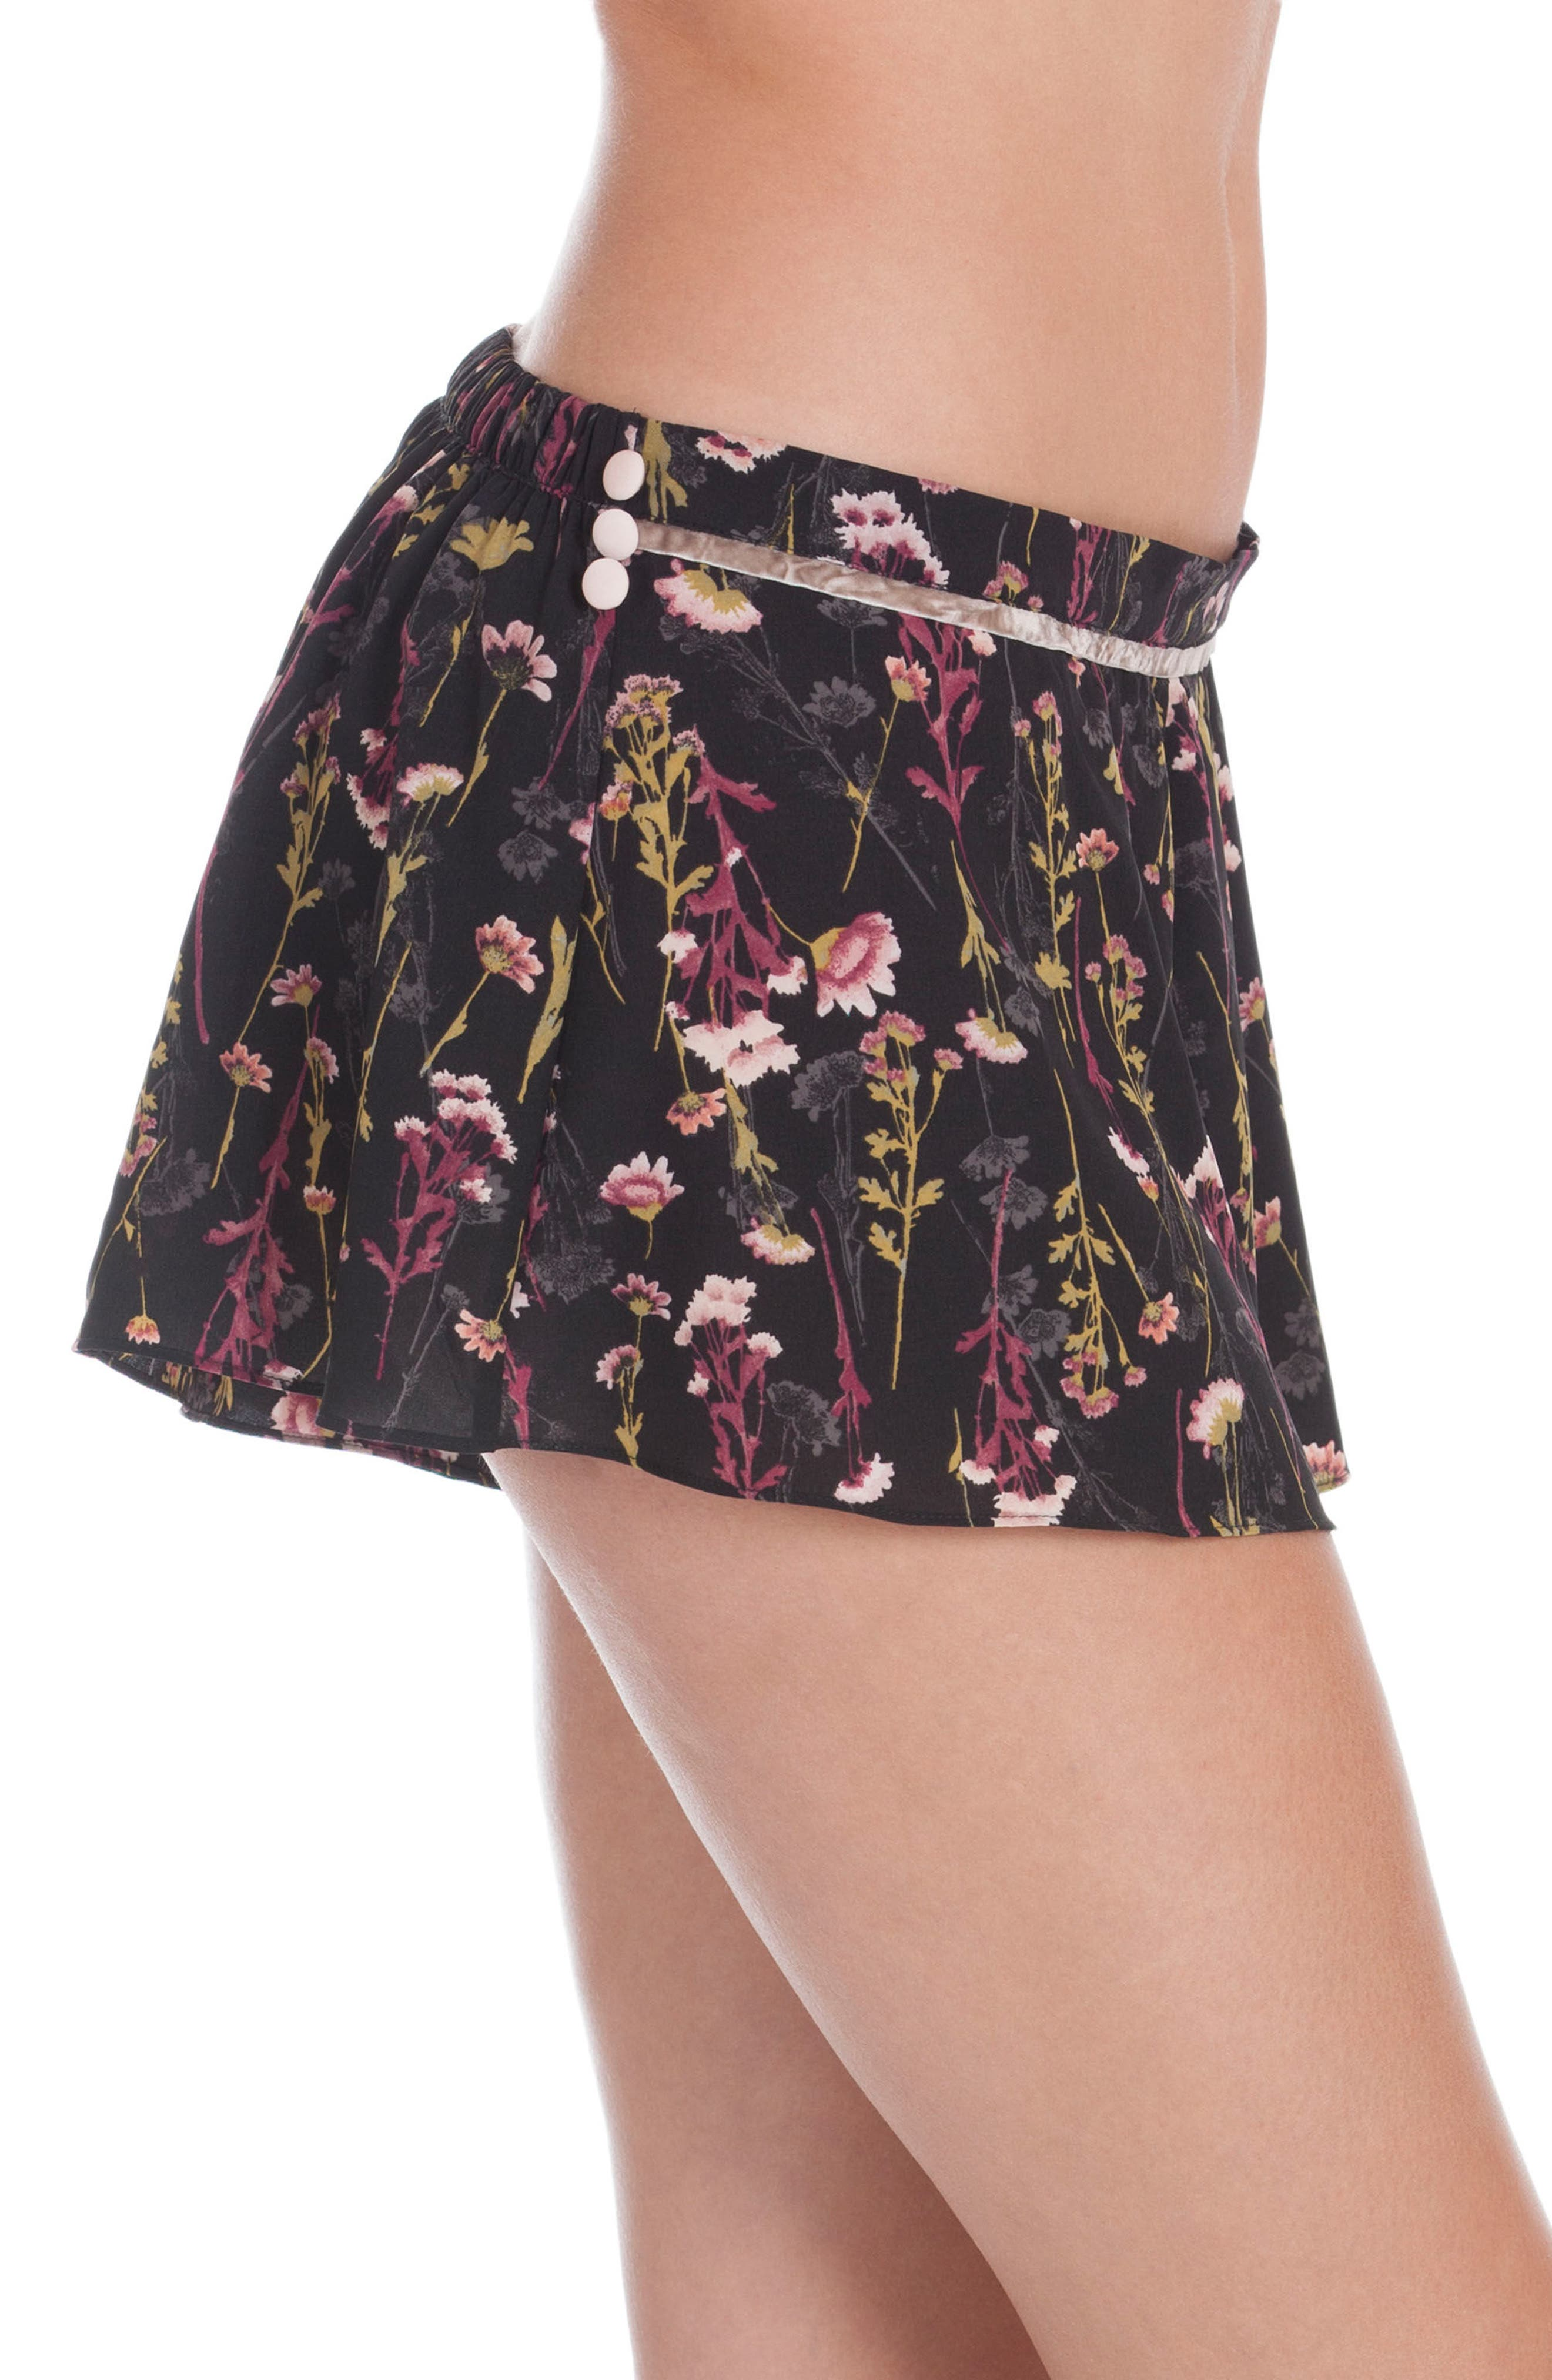 Floral Print Lounge Shorts,                             Alternate thumbnail 3, color,                             001